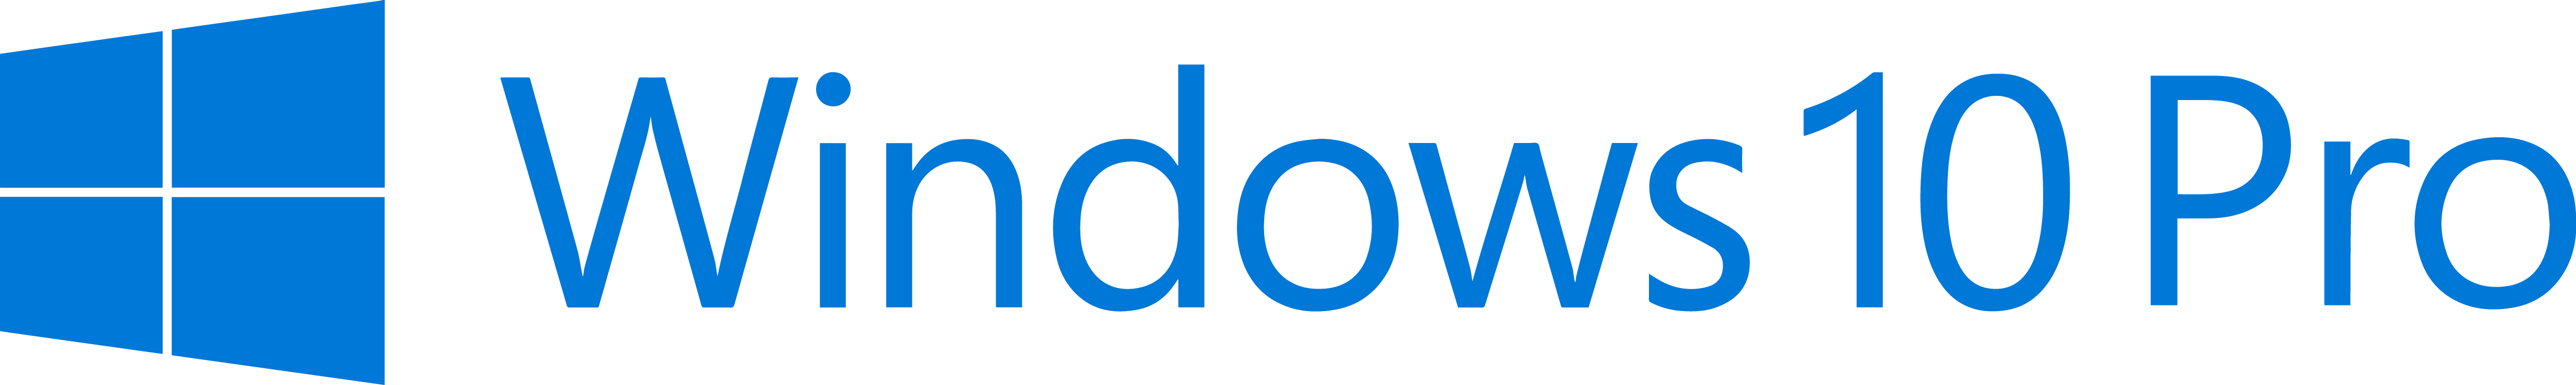 Windows 10 pro logo